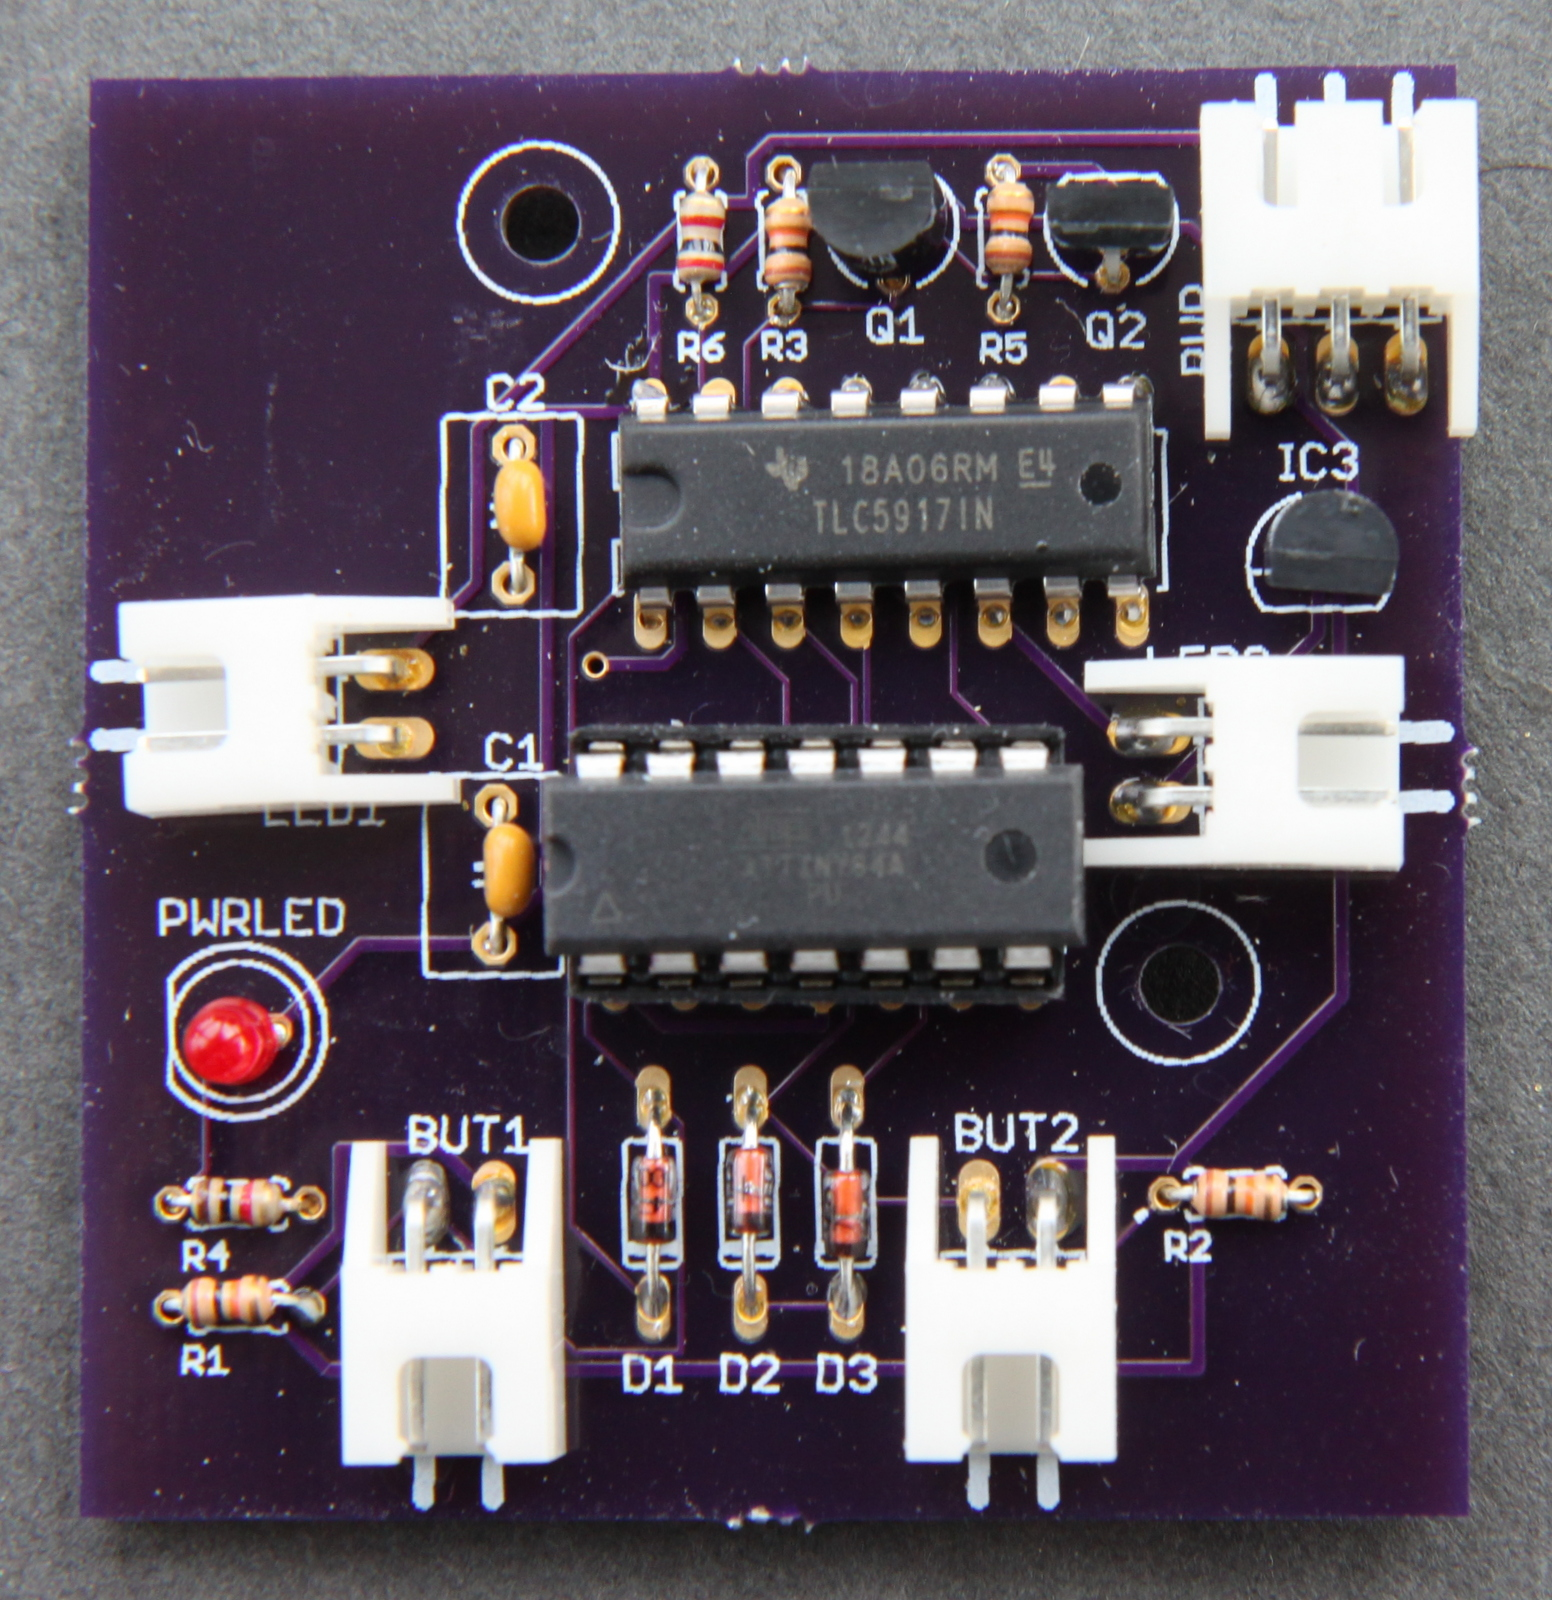 Ikea Duktig Play Stove Battery Saver Circuit Boards Like Magic Appears This Is What Your New Board Looks Theres A Similar Inside Well Be Replacing It With One